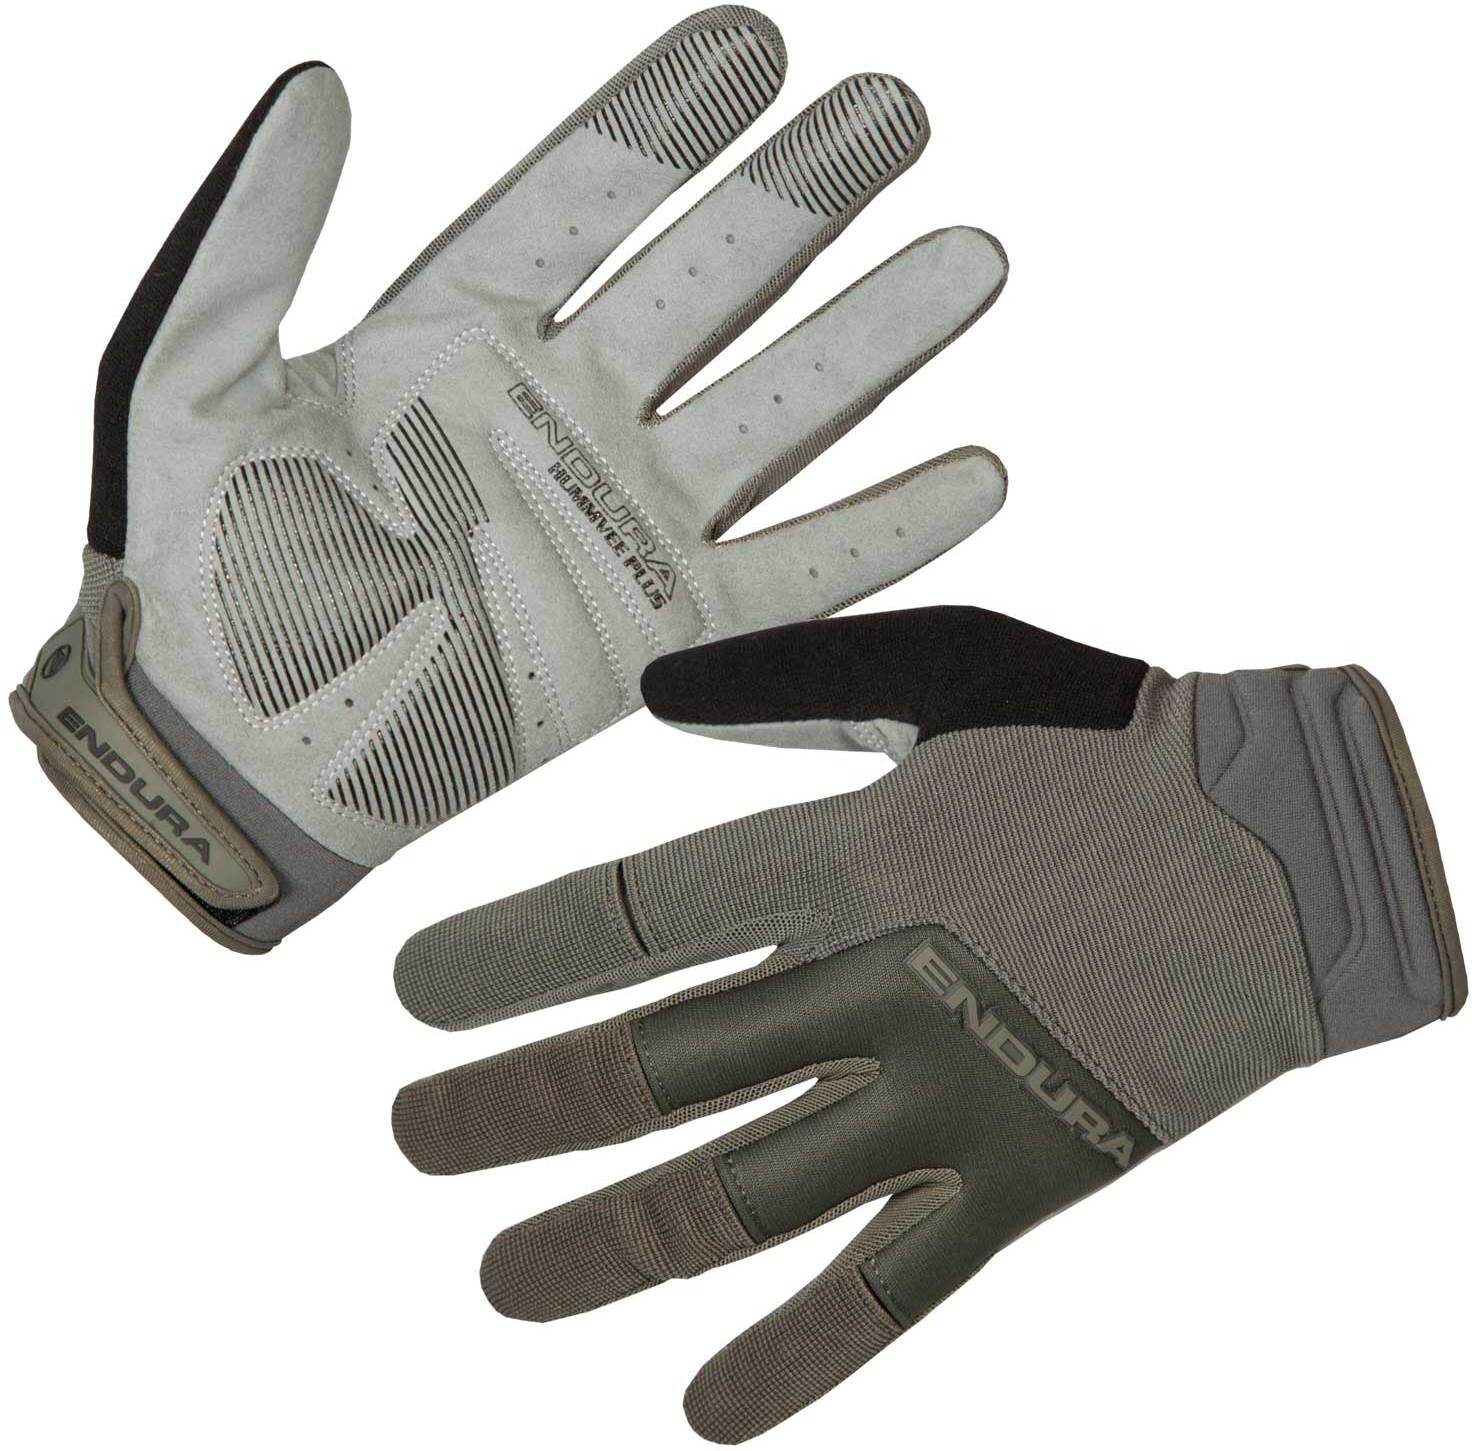 X-Large Ringers Gloves 160 Light Duty Series Silicone Padding